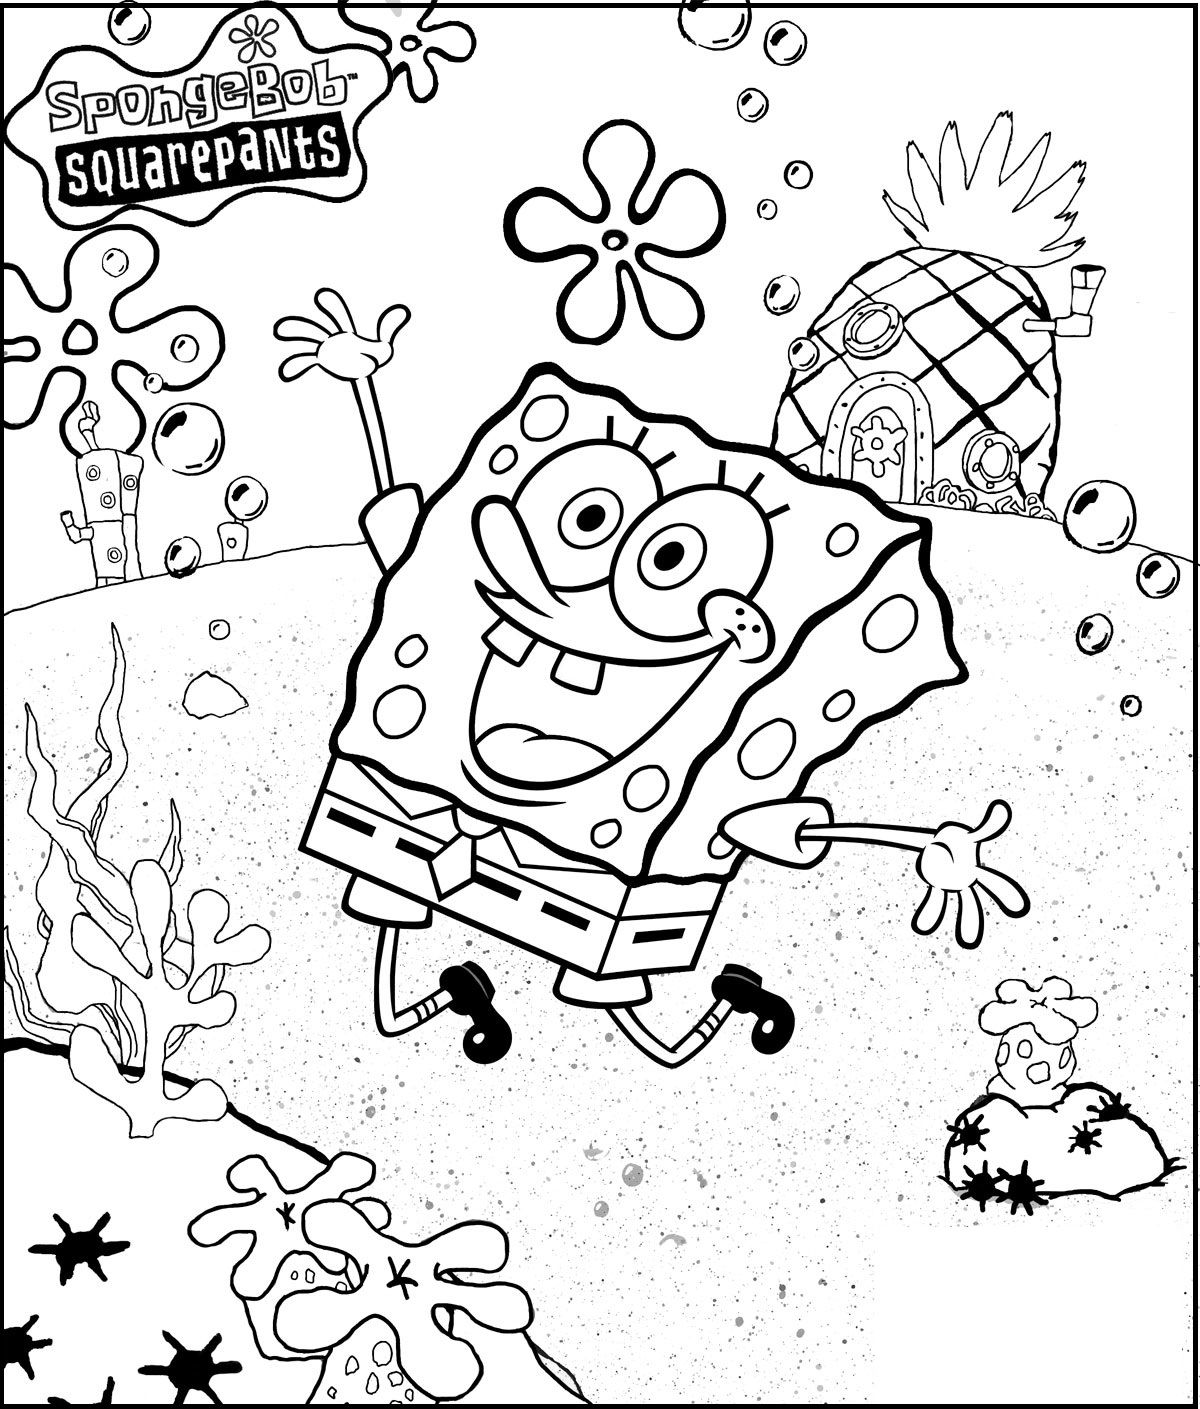 Spongebob Very Merry coloring picture for kids | Spongebob ...